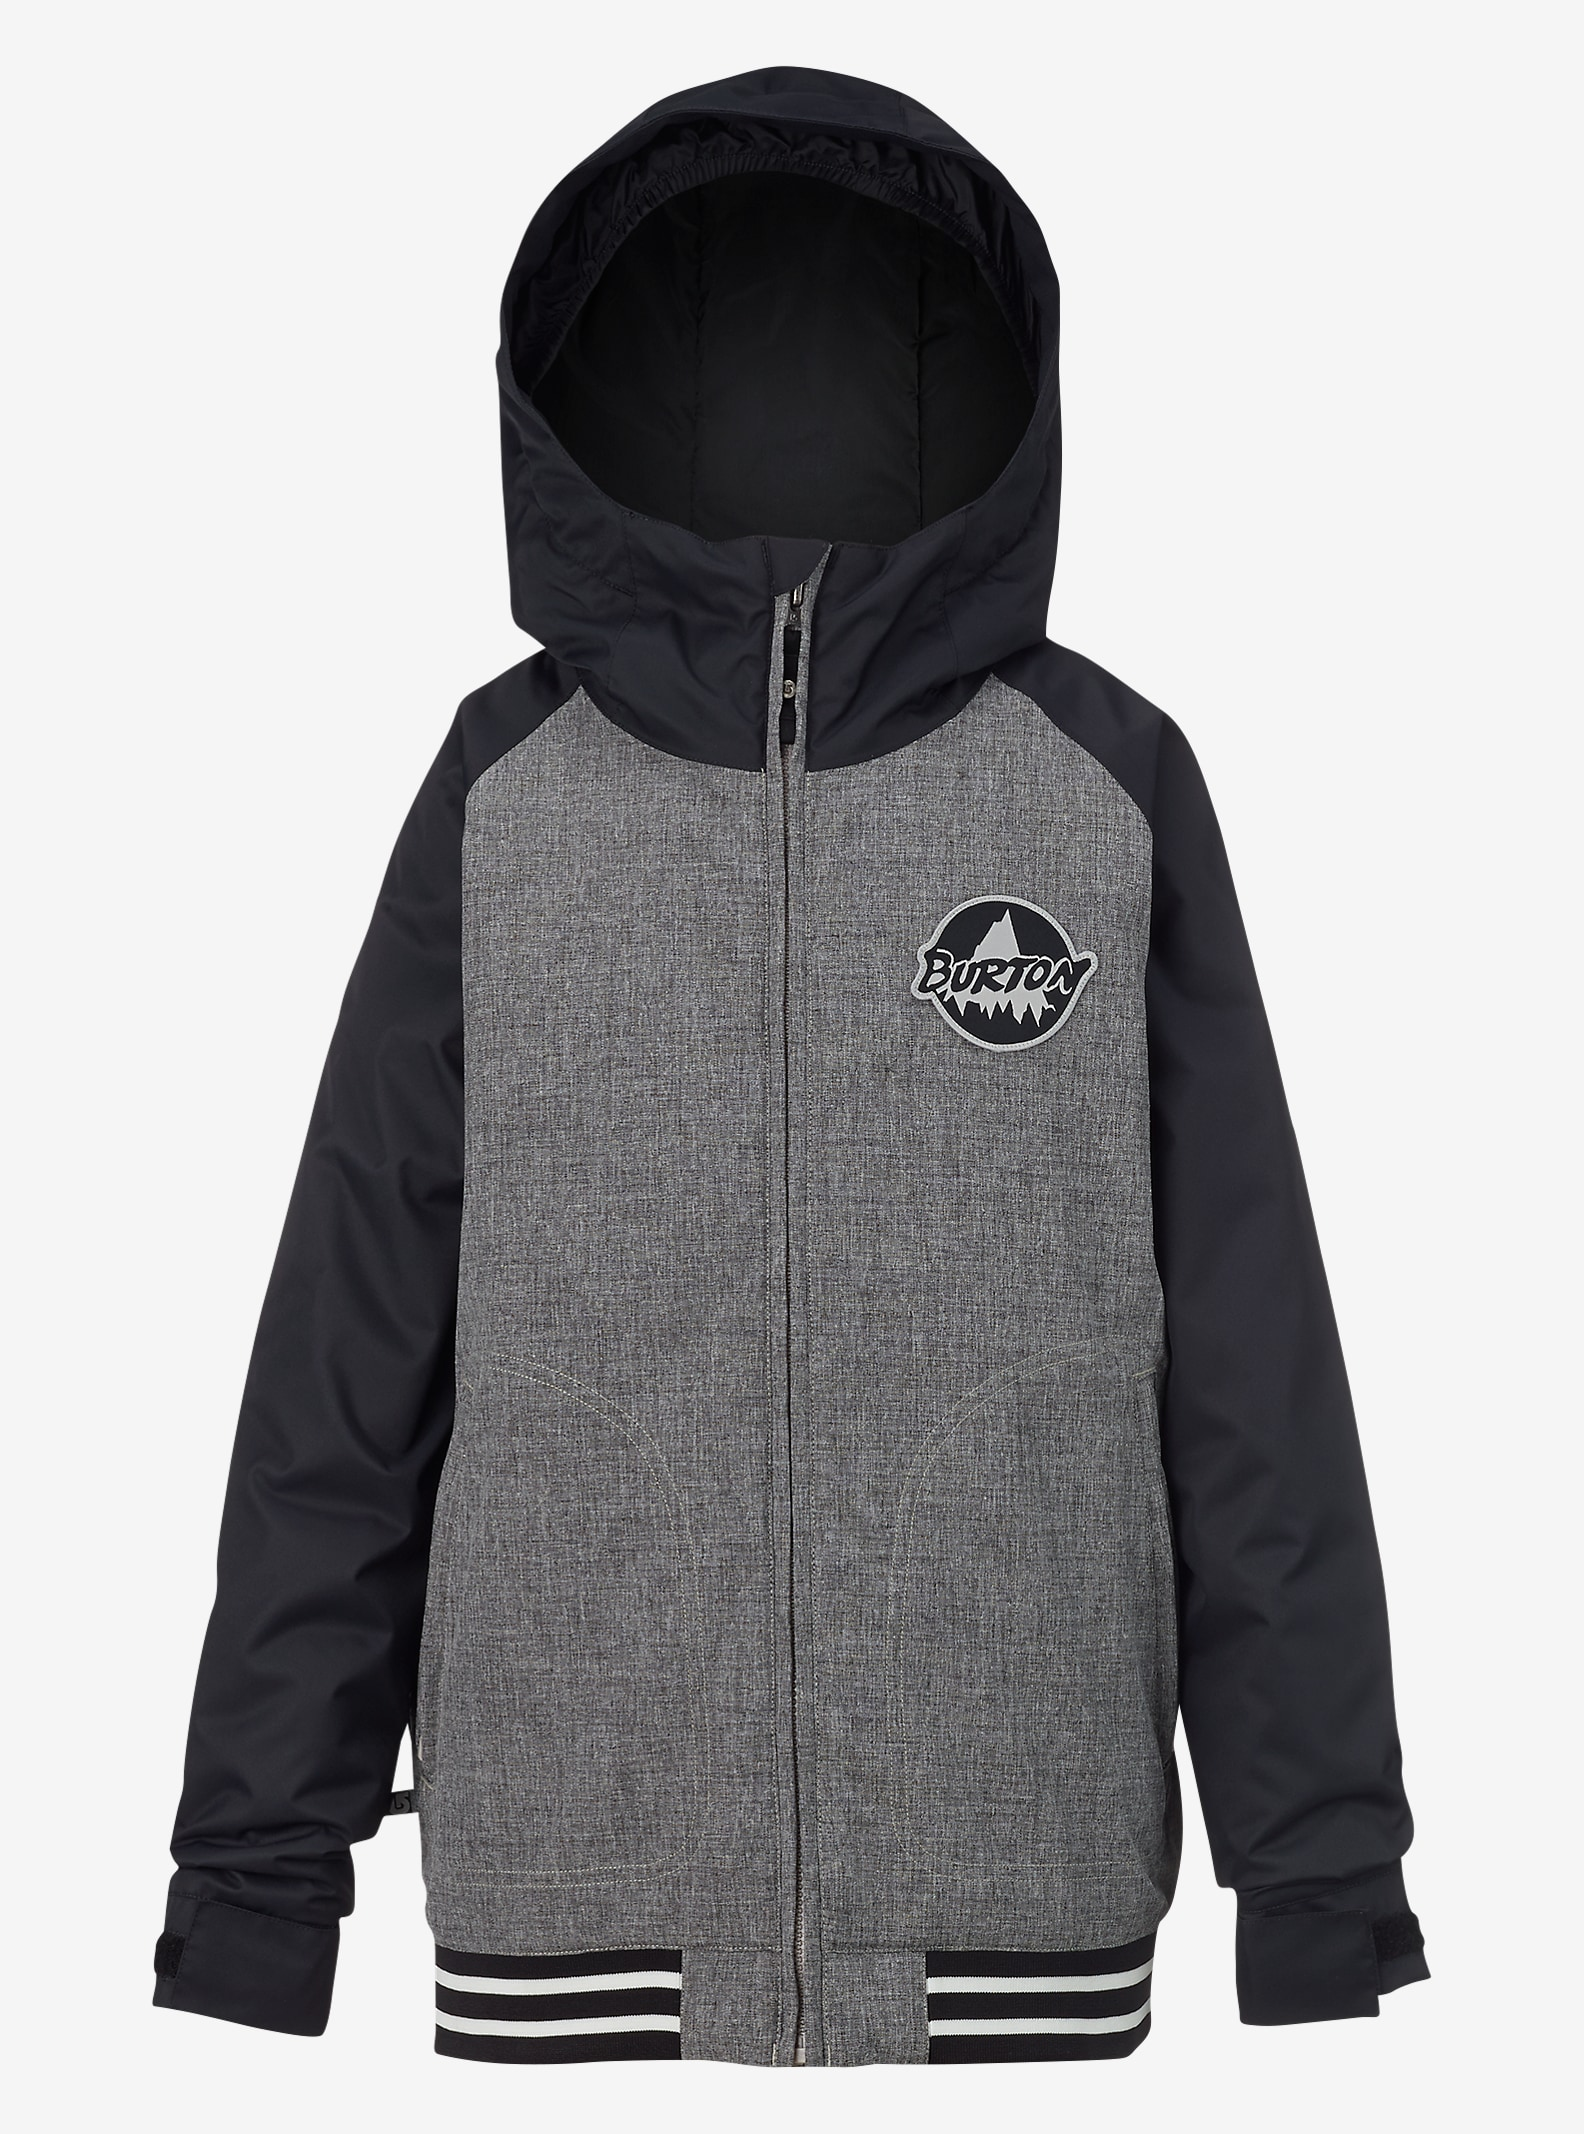 Burton Boys' Game Day Jacket shown in Heather Iron Gray / True Black